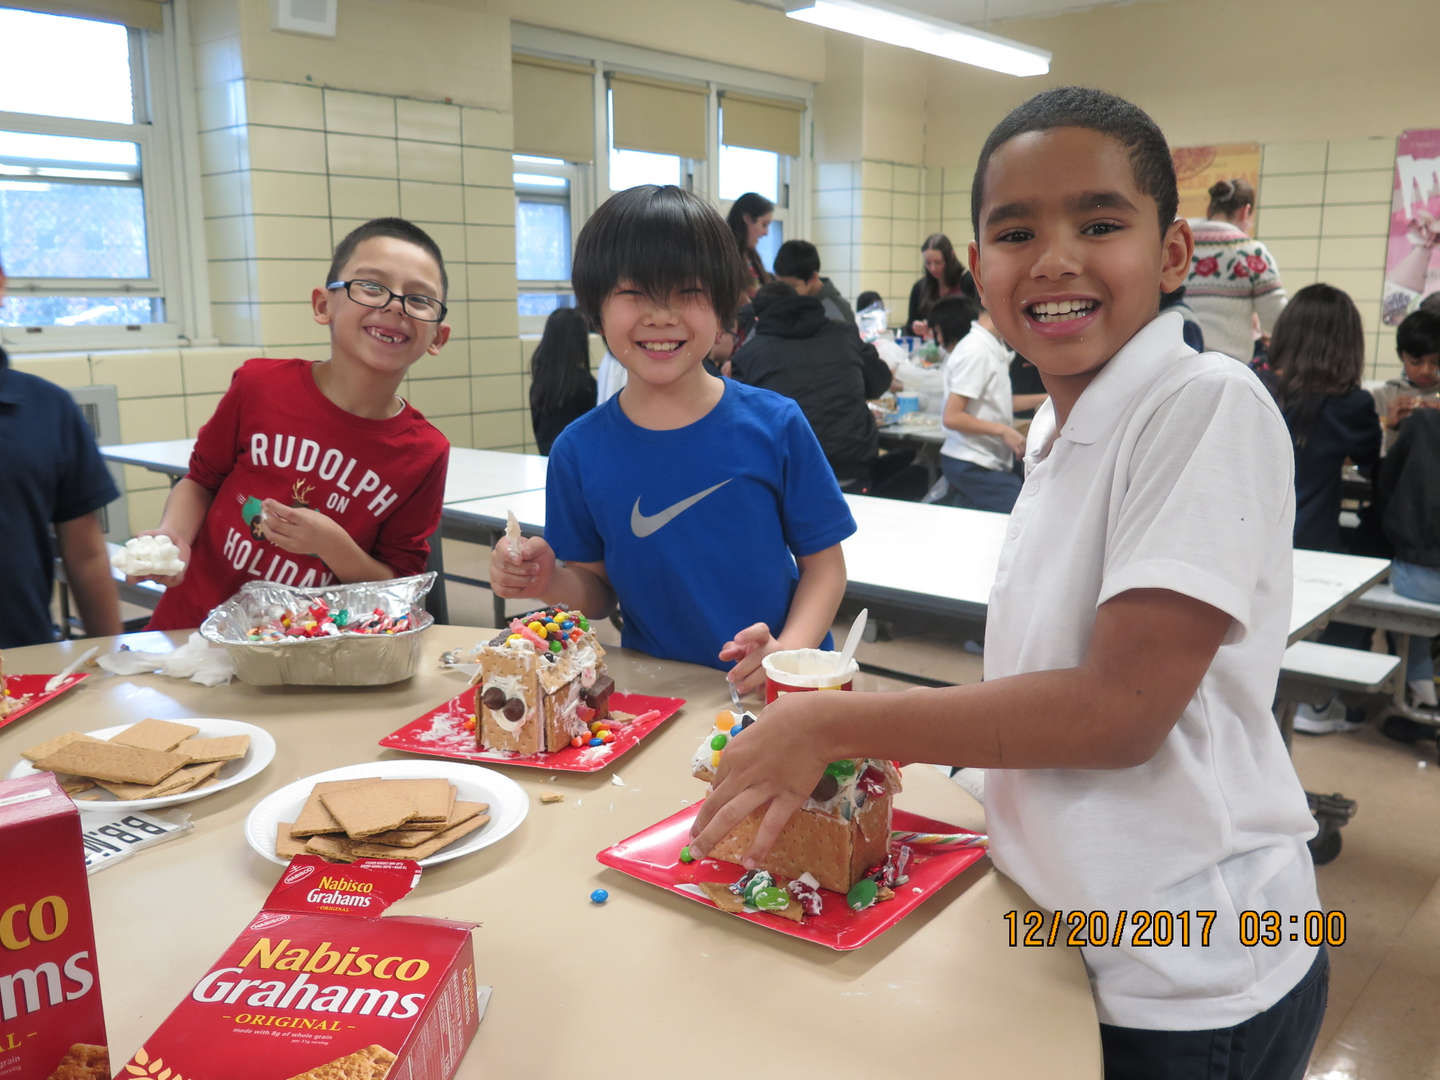 Students building gingerbread houses